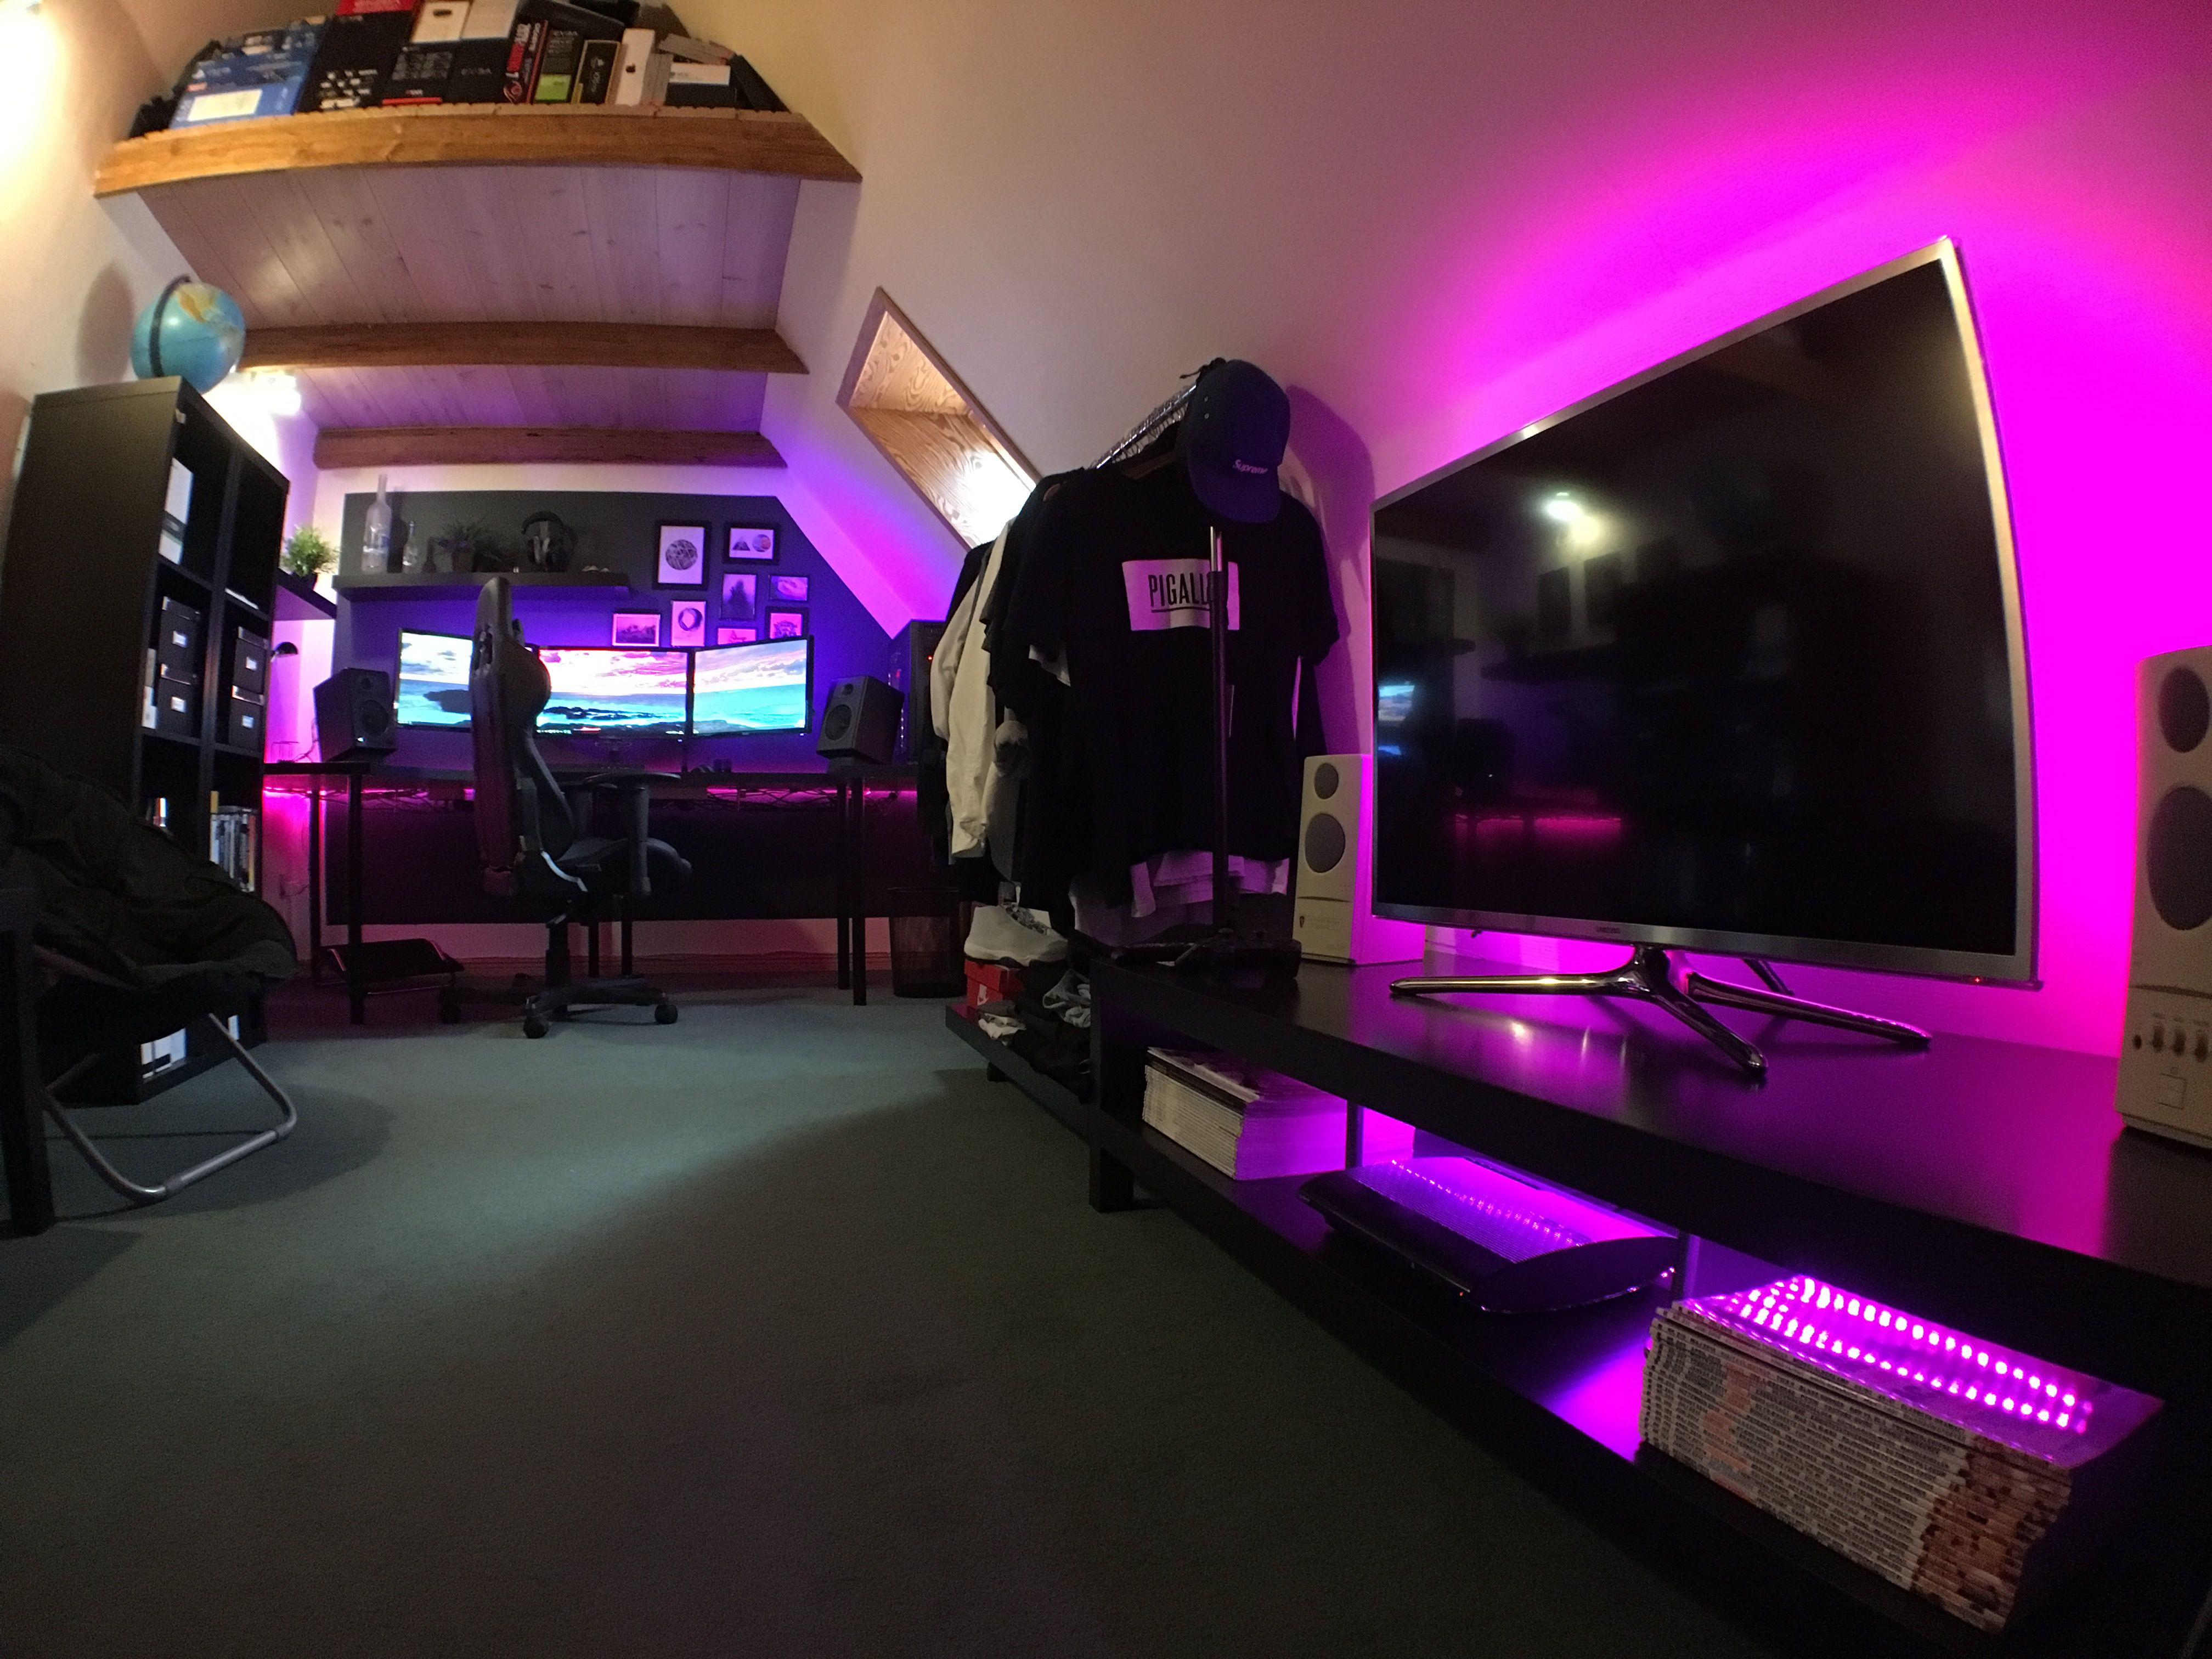 Best ideas about Pc Game Room . Save or Pin Full Battlestation Room Tour What do you think Now.